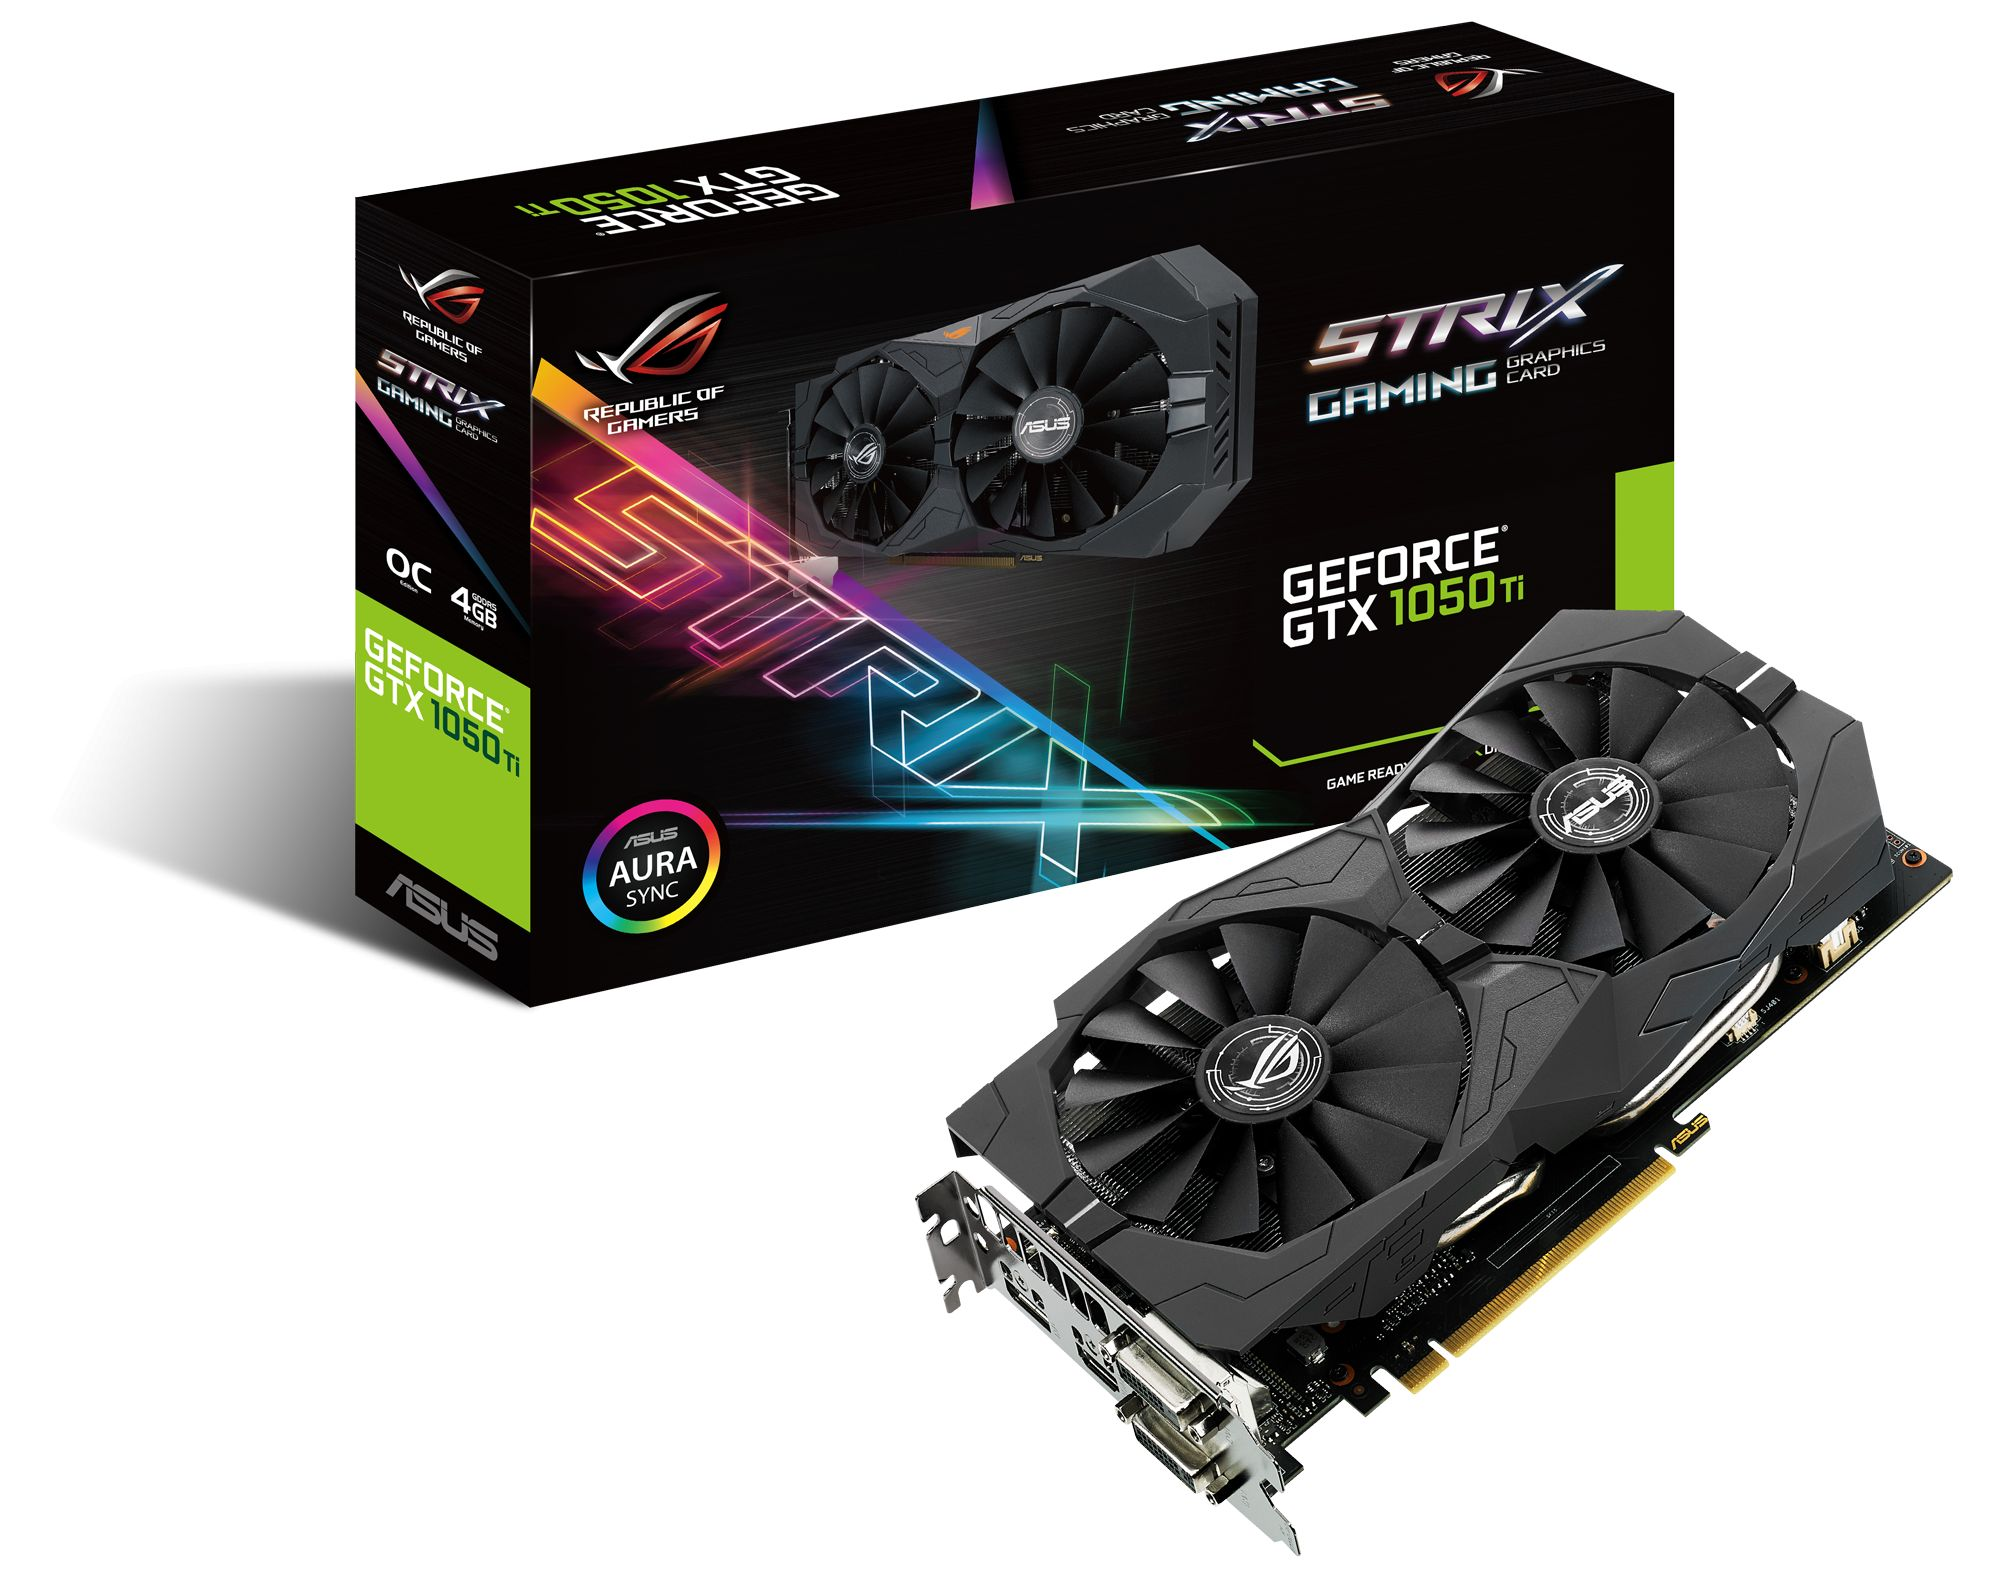 ROG Strix GeForce GTX 1050 Ti also has GPU Tweak II with XSplit Gamecaster  that provides intuitive performance tweaking and instant gameplay streaming.